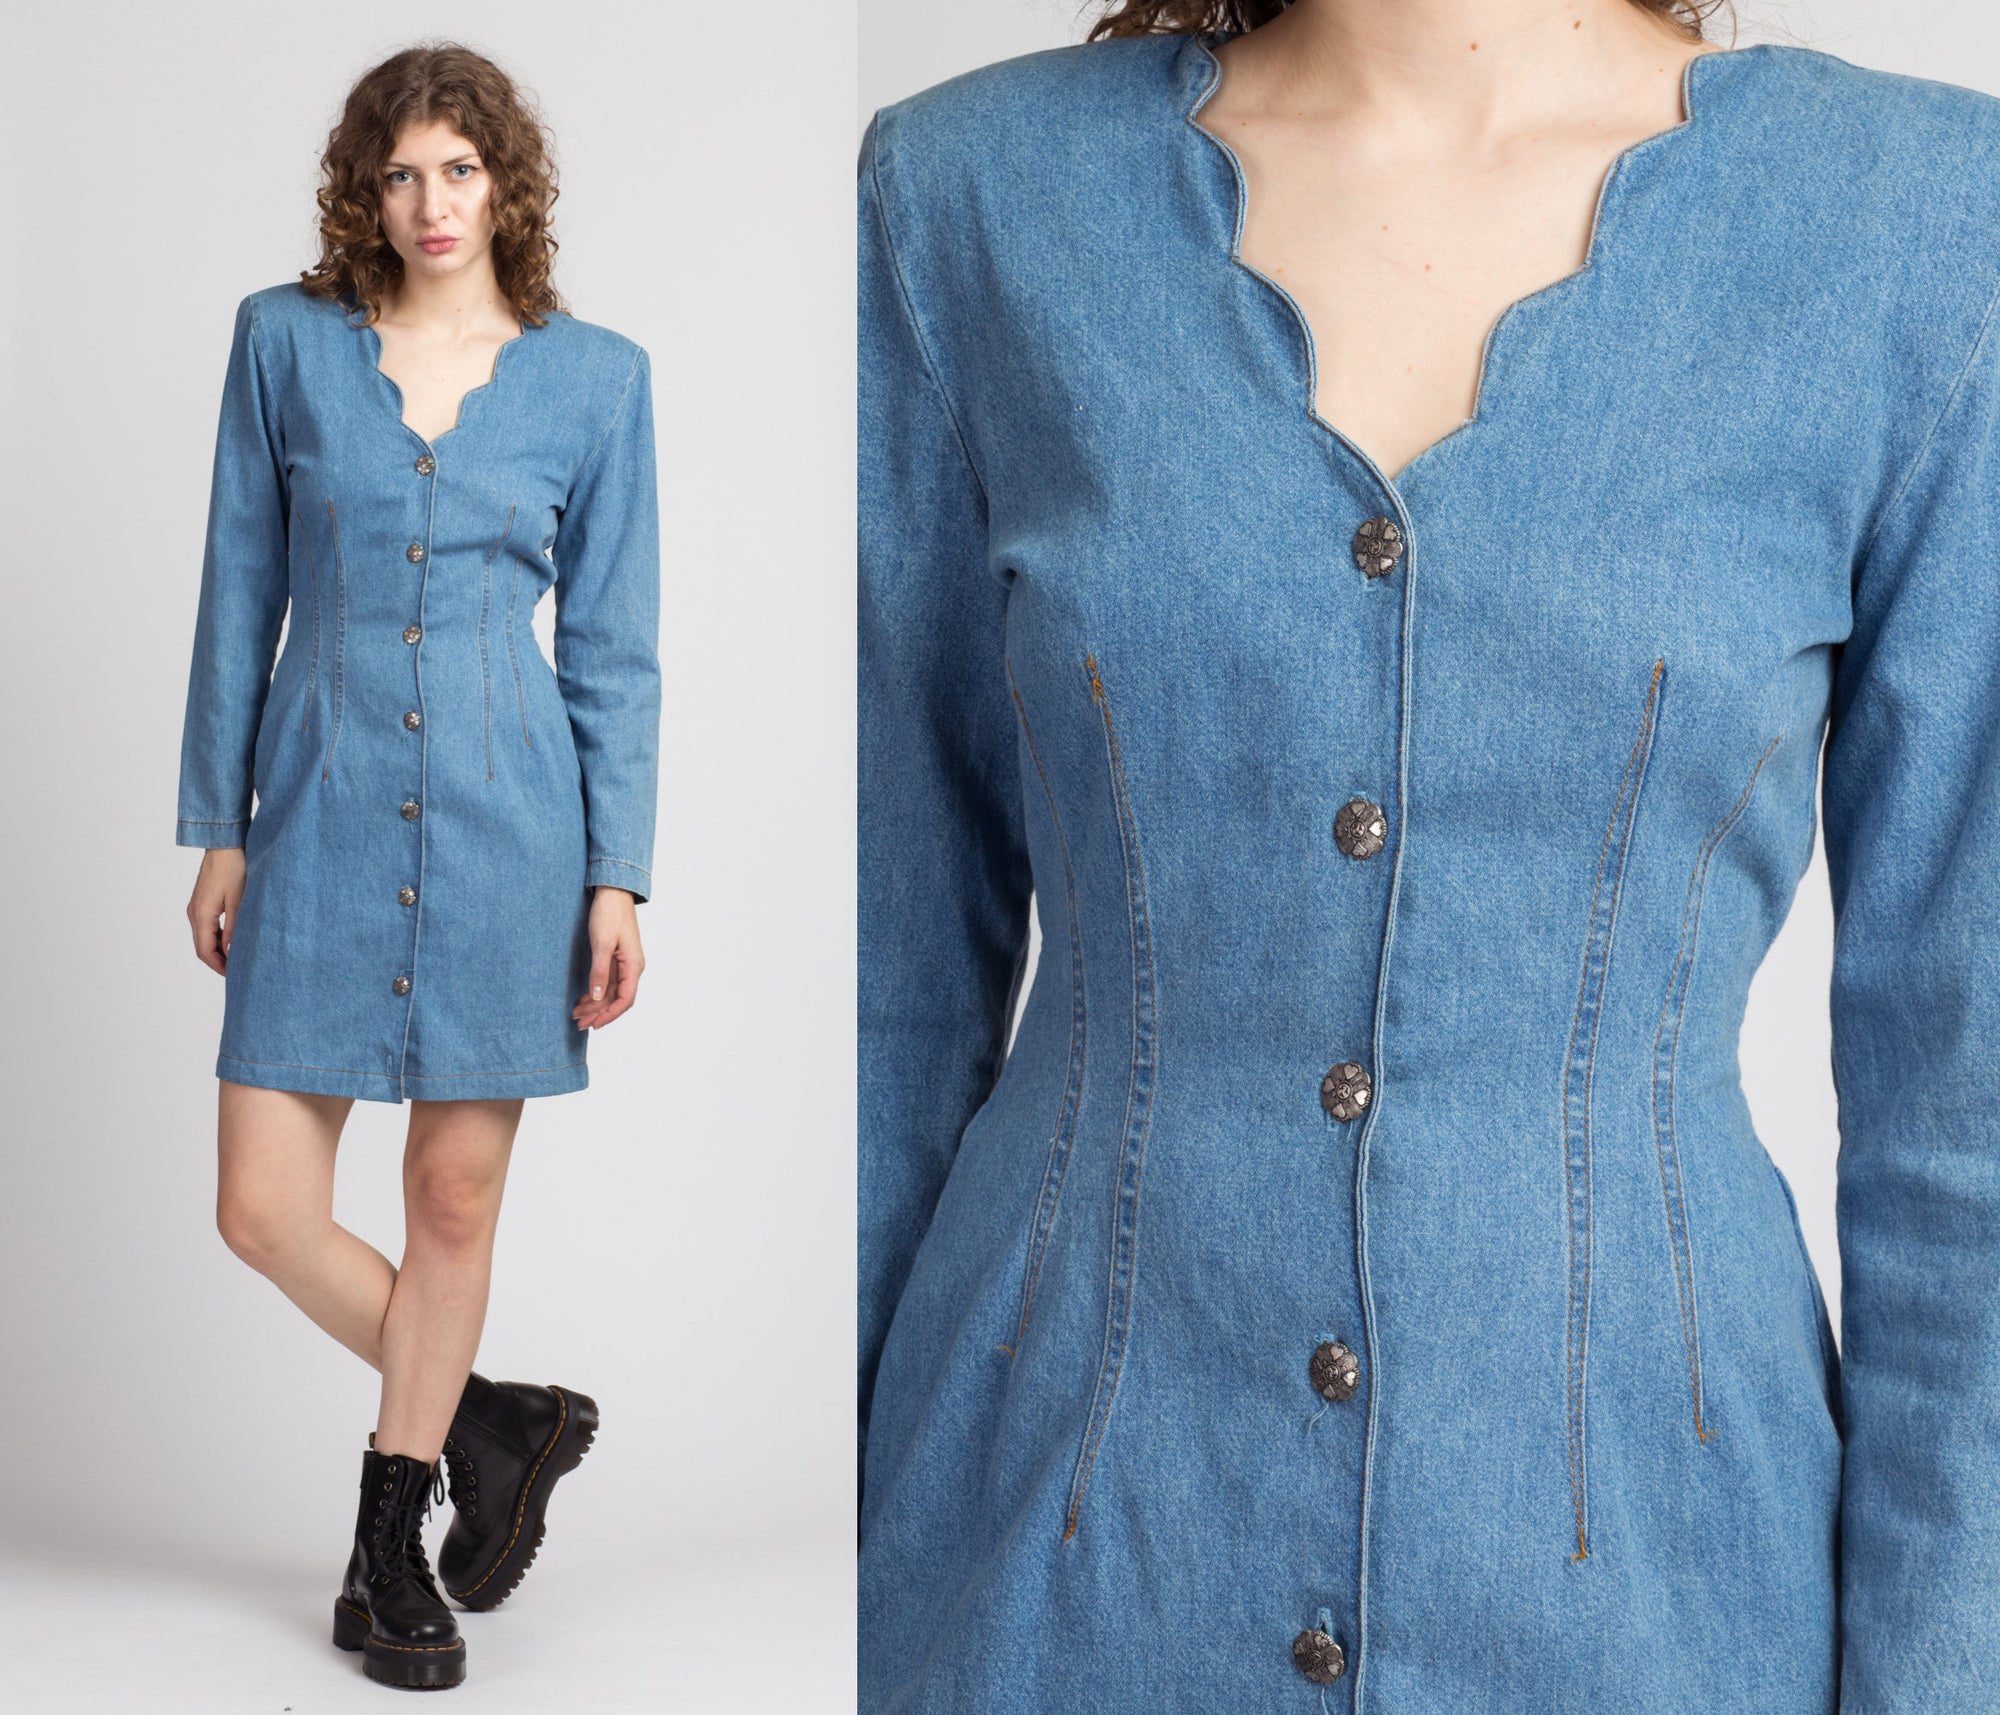 80s Scalloped Denim Mini Dress - Small to Medium